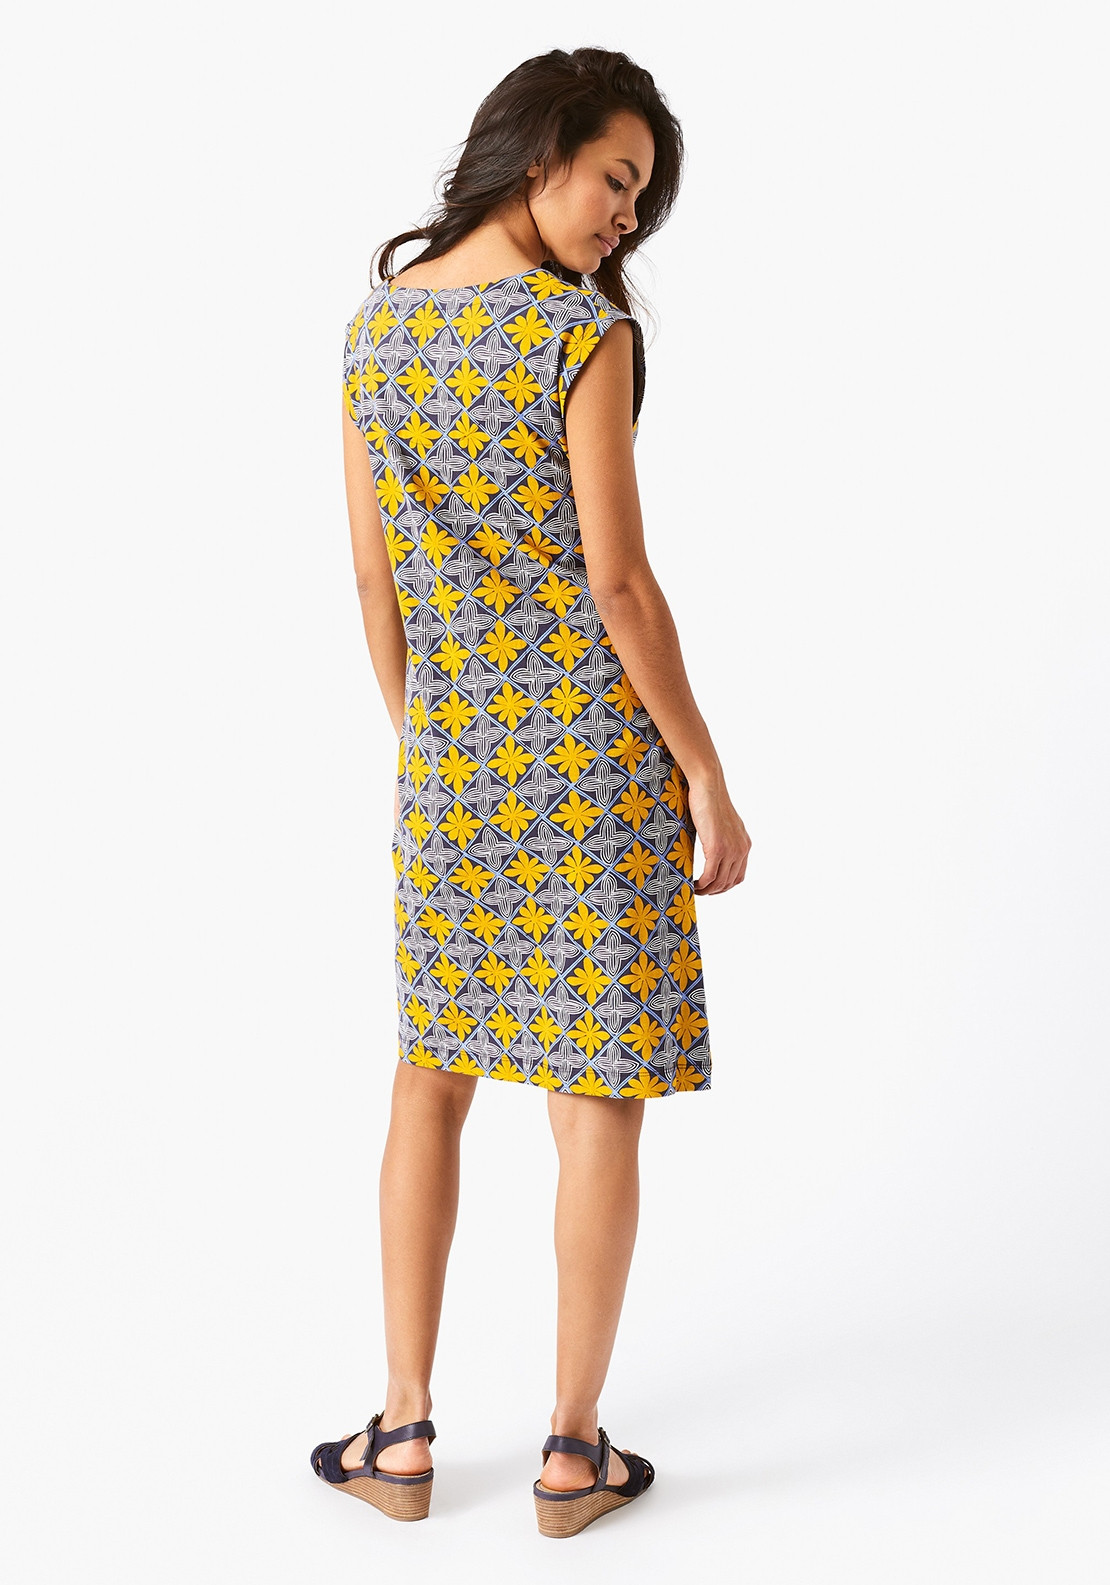 932701f820 White Stuff Lena Fairtrade Cotton Dress, Yellow & Blue. Be the first to  review this product